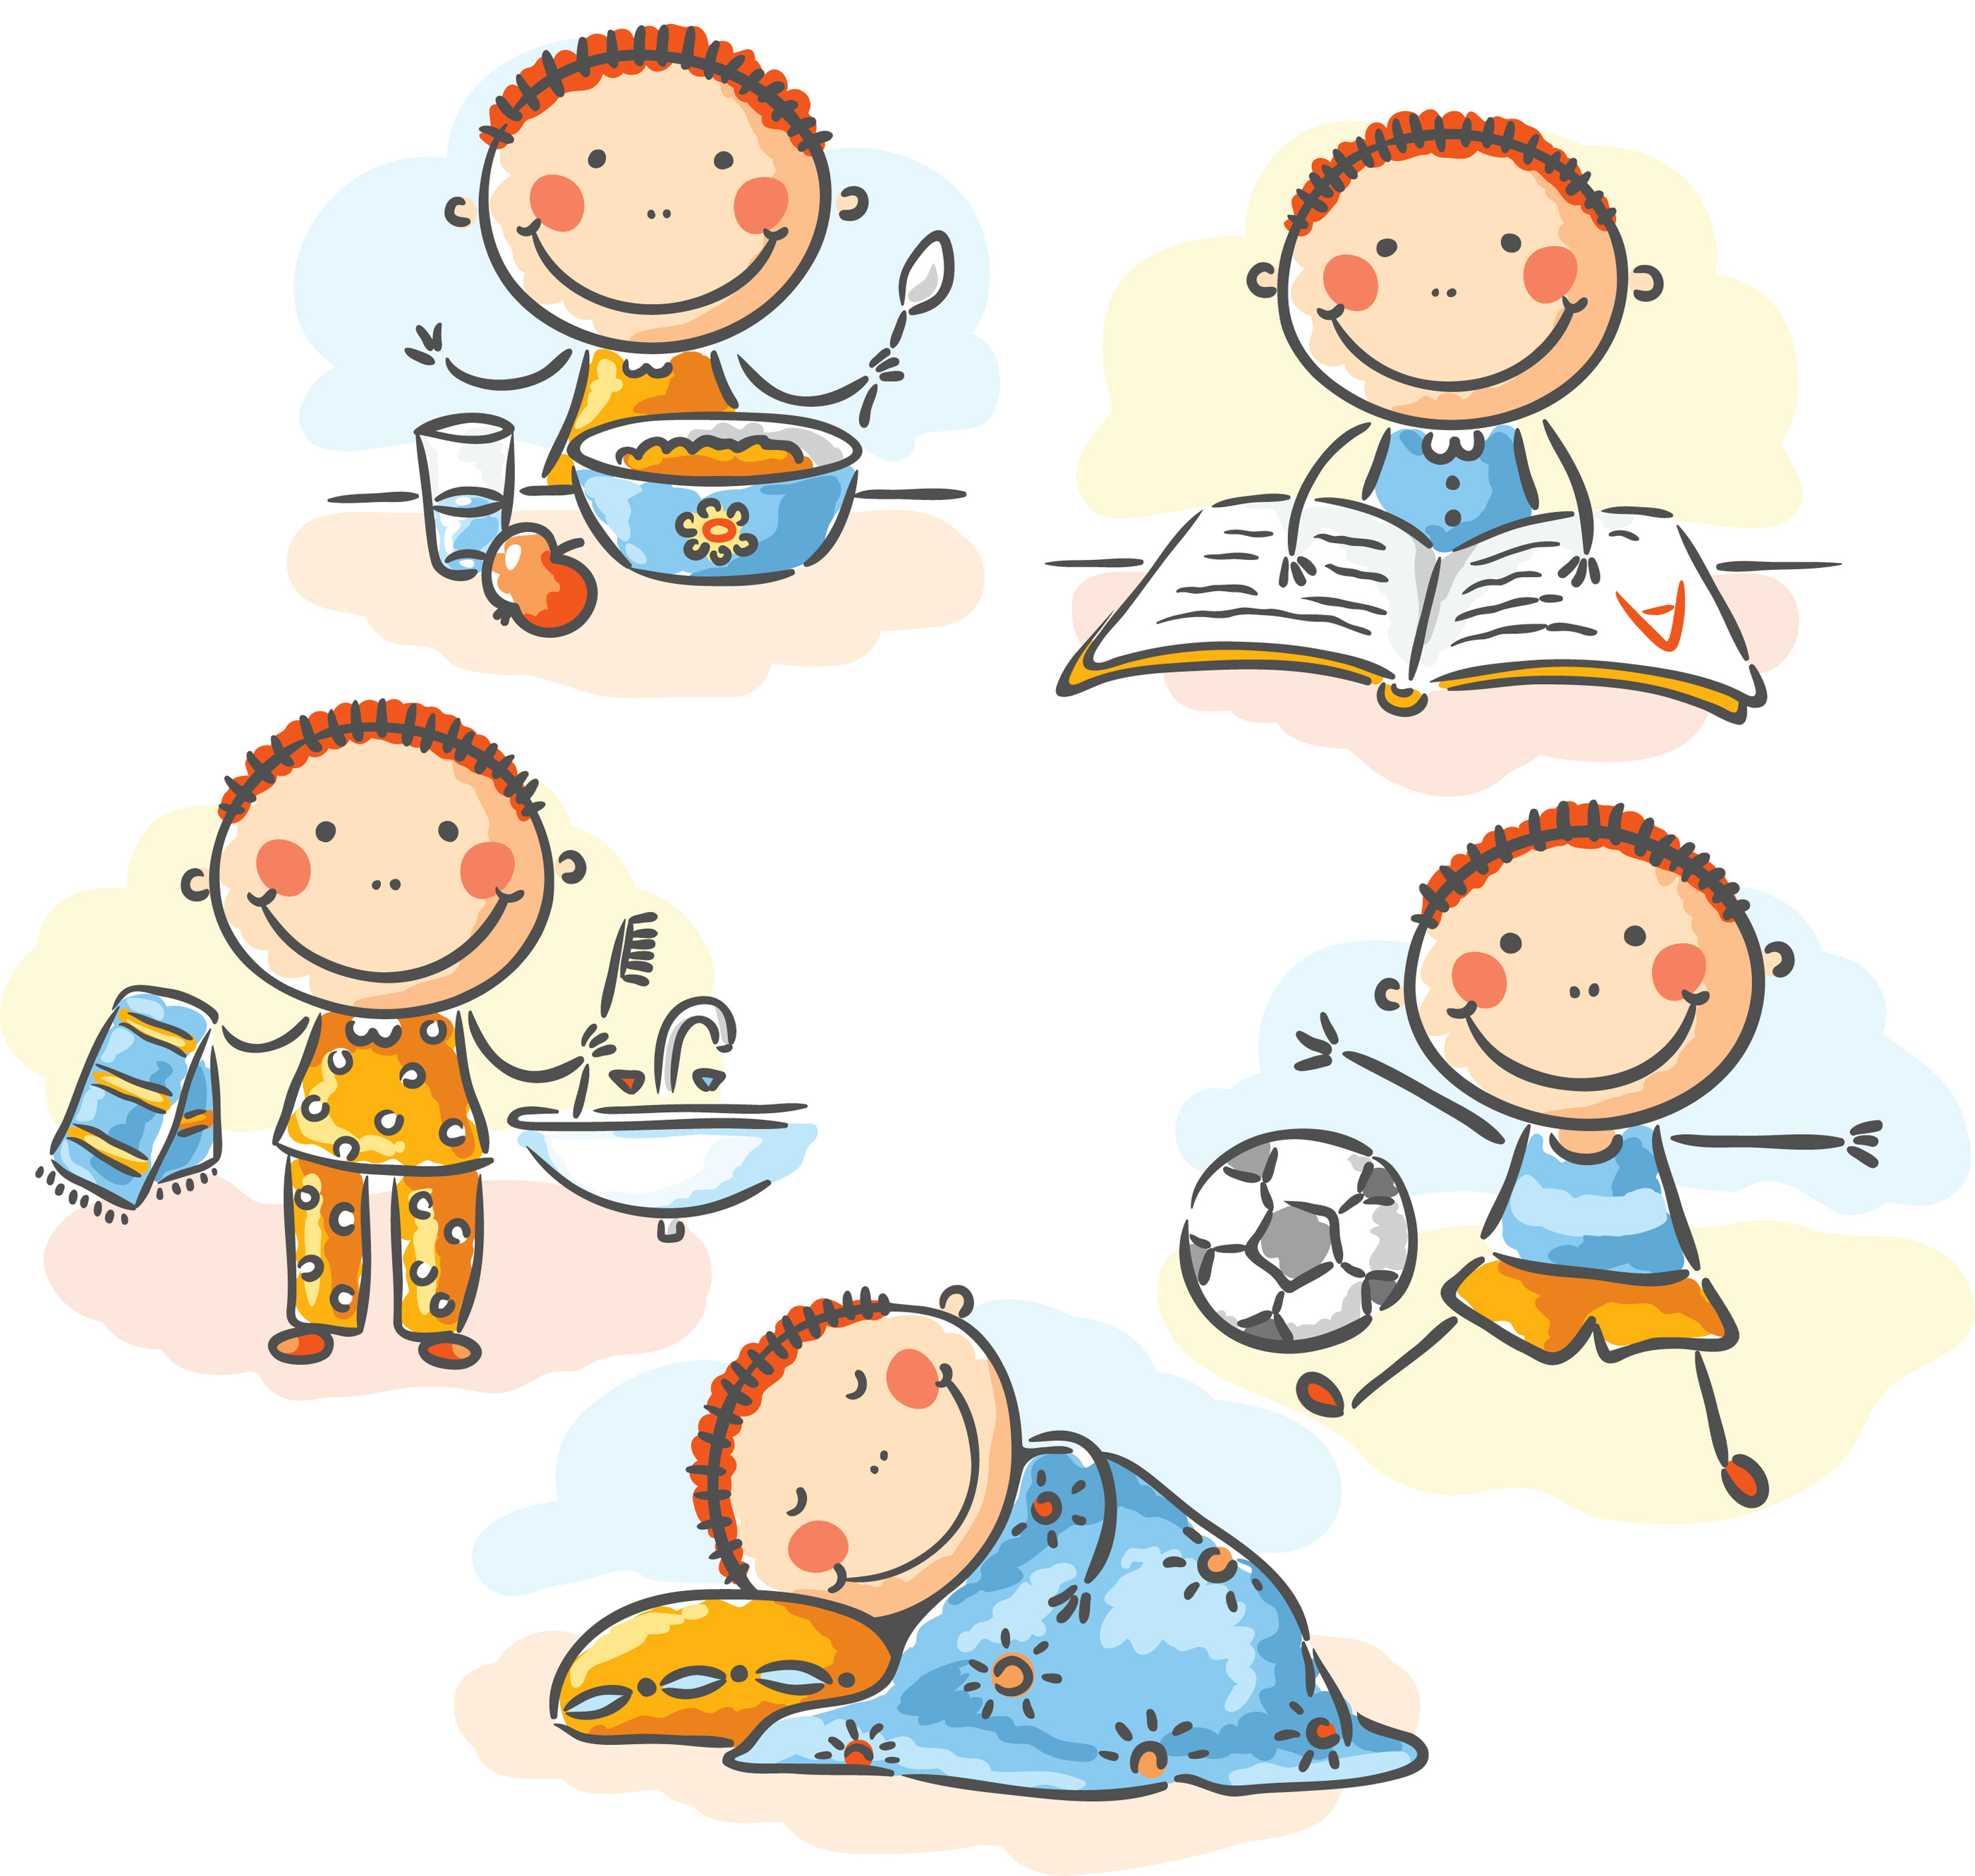 Bed clipart sleep time Go Children Bed HiRes The